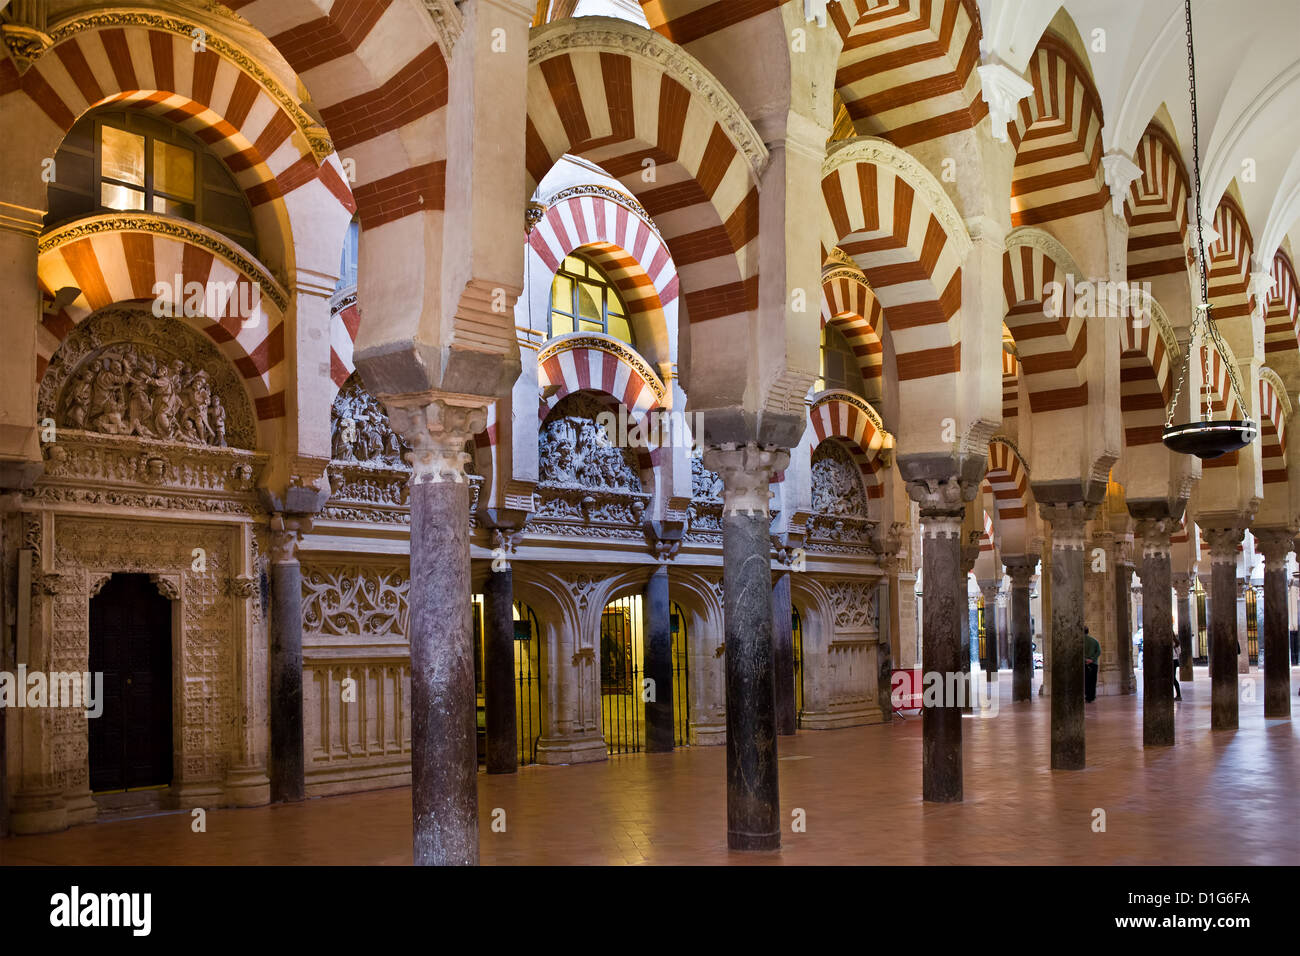 Hypostyle Prayer Hall of the Mezquita (The Great Mosque, Cathedral Stock Phot...